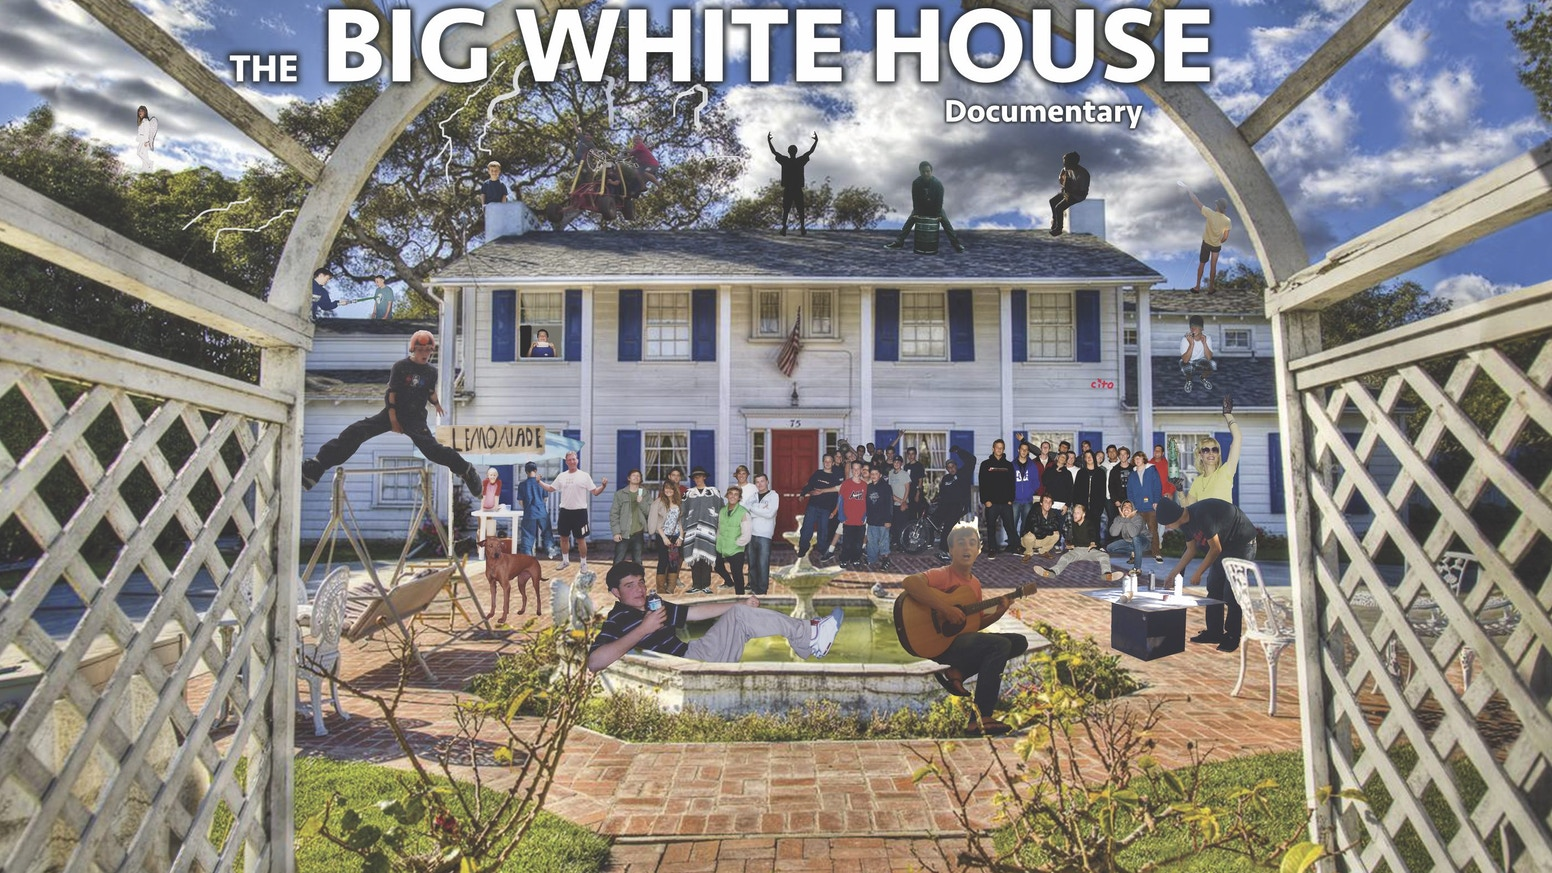 The big white house broken homes dare devil stunts wild antics and the house that brought these lost boys together in one of the richest places on earth